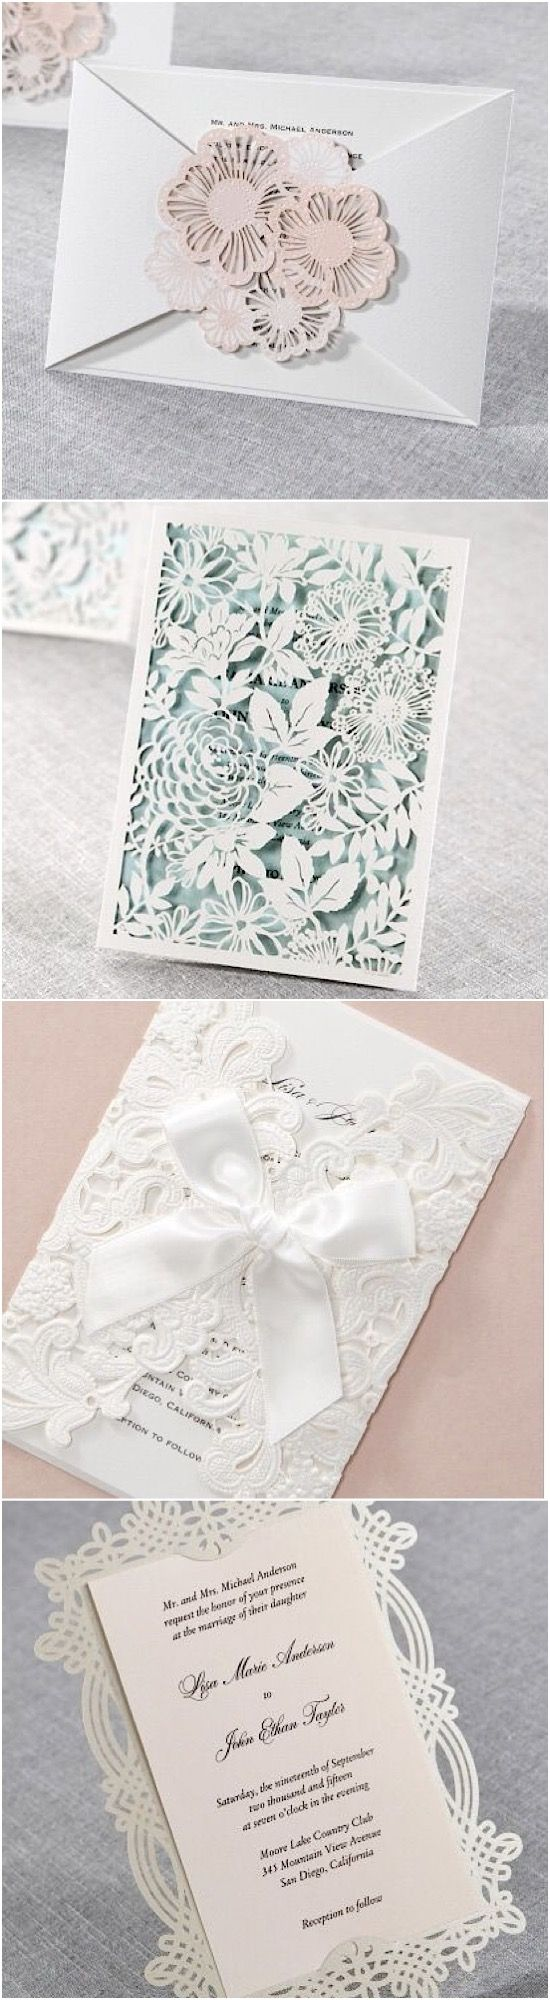 826 best INVITATIONS images on Pinterest | Invitations, Tropical ...